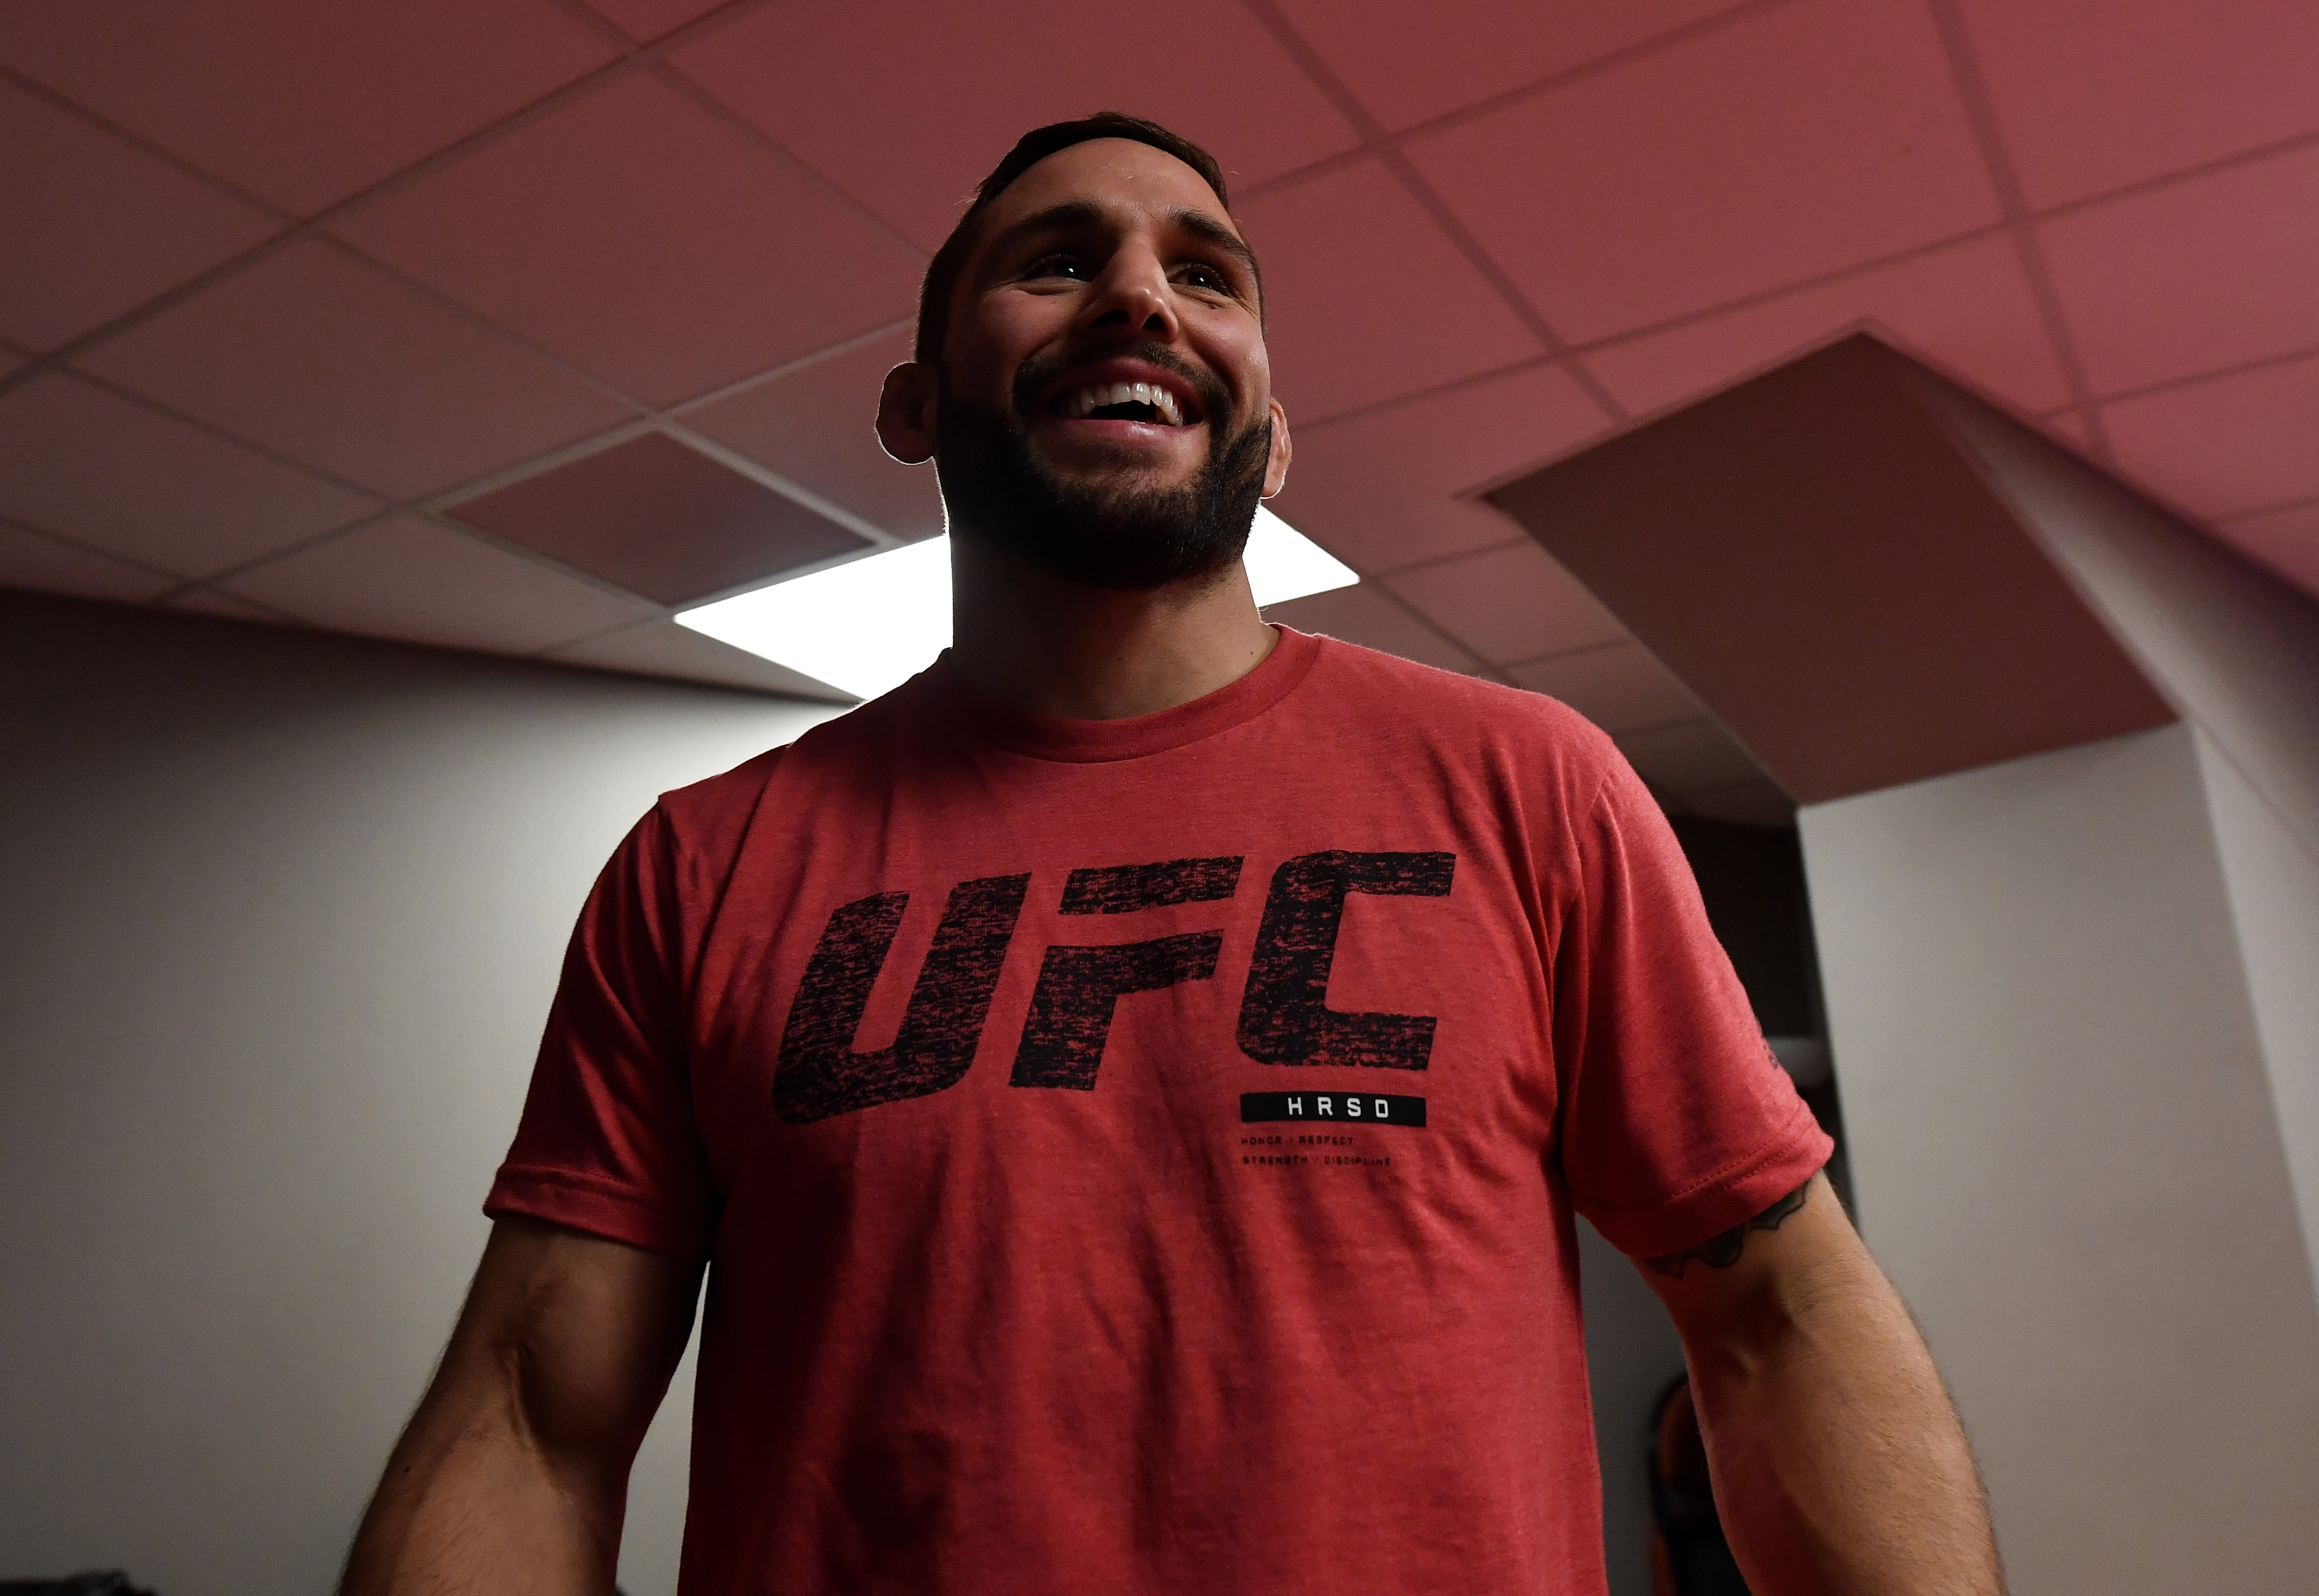 Chad Mendes has nothing but good words for his former employer.